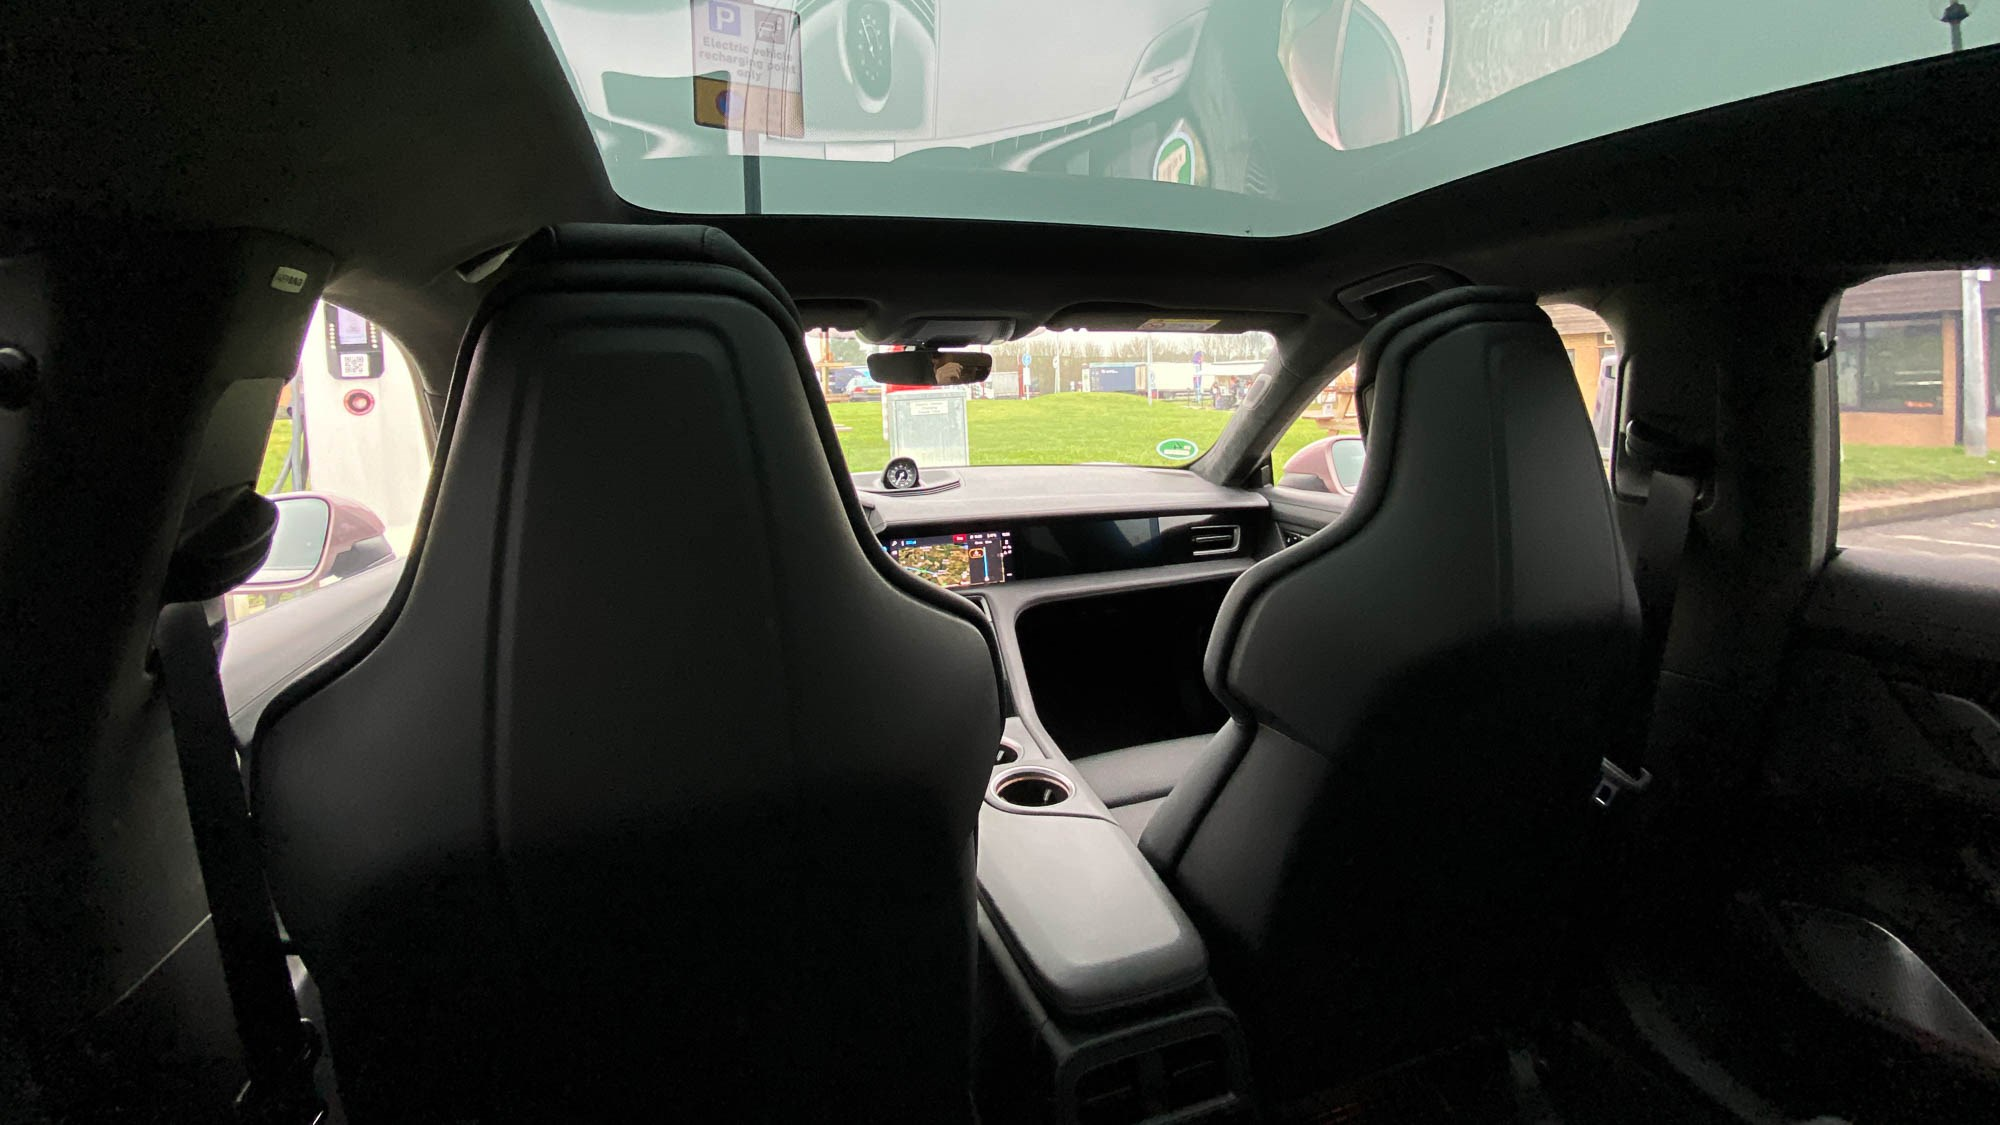 Porsche Taycan rear seats, with panoramic roof - 2021